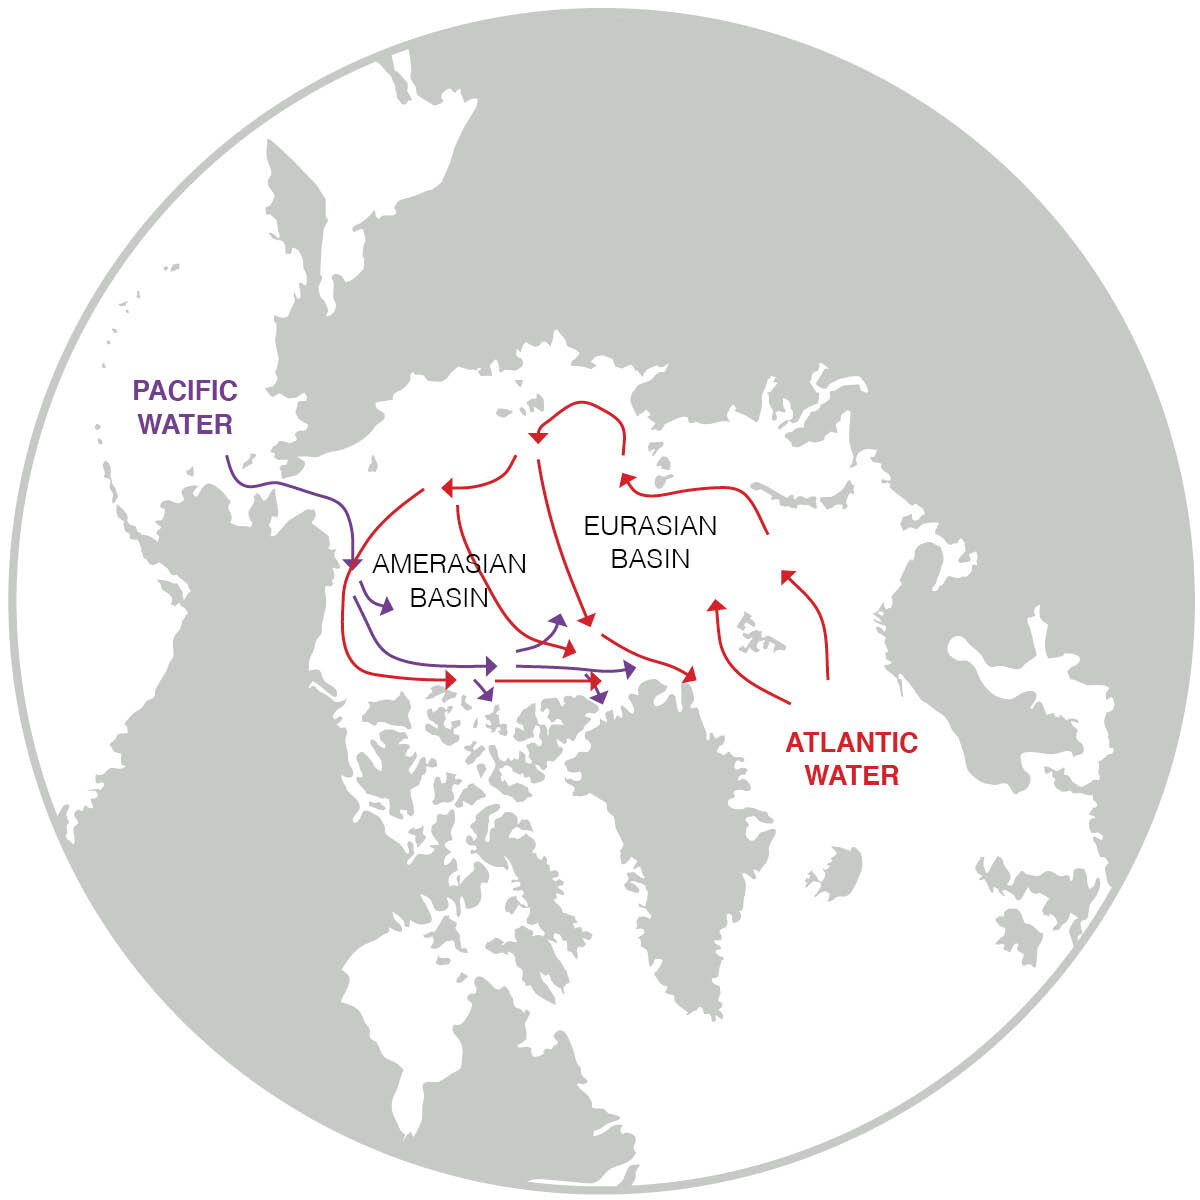 Arctic Ocean changes driven by sub-Arctic seas - Phys.org